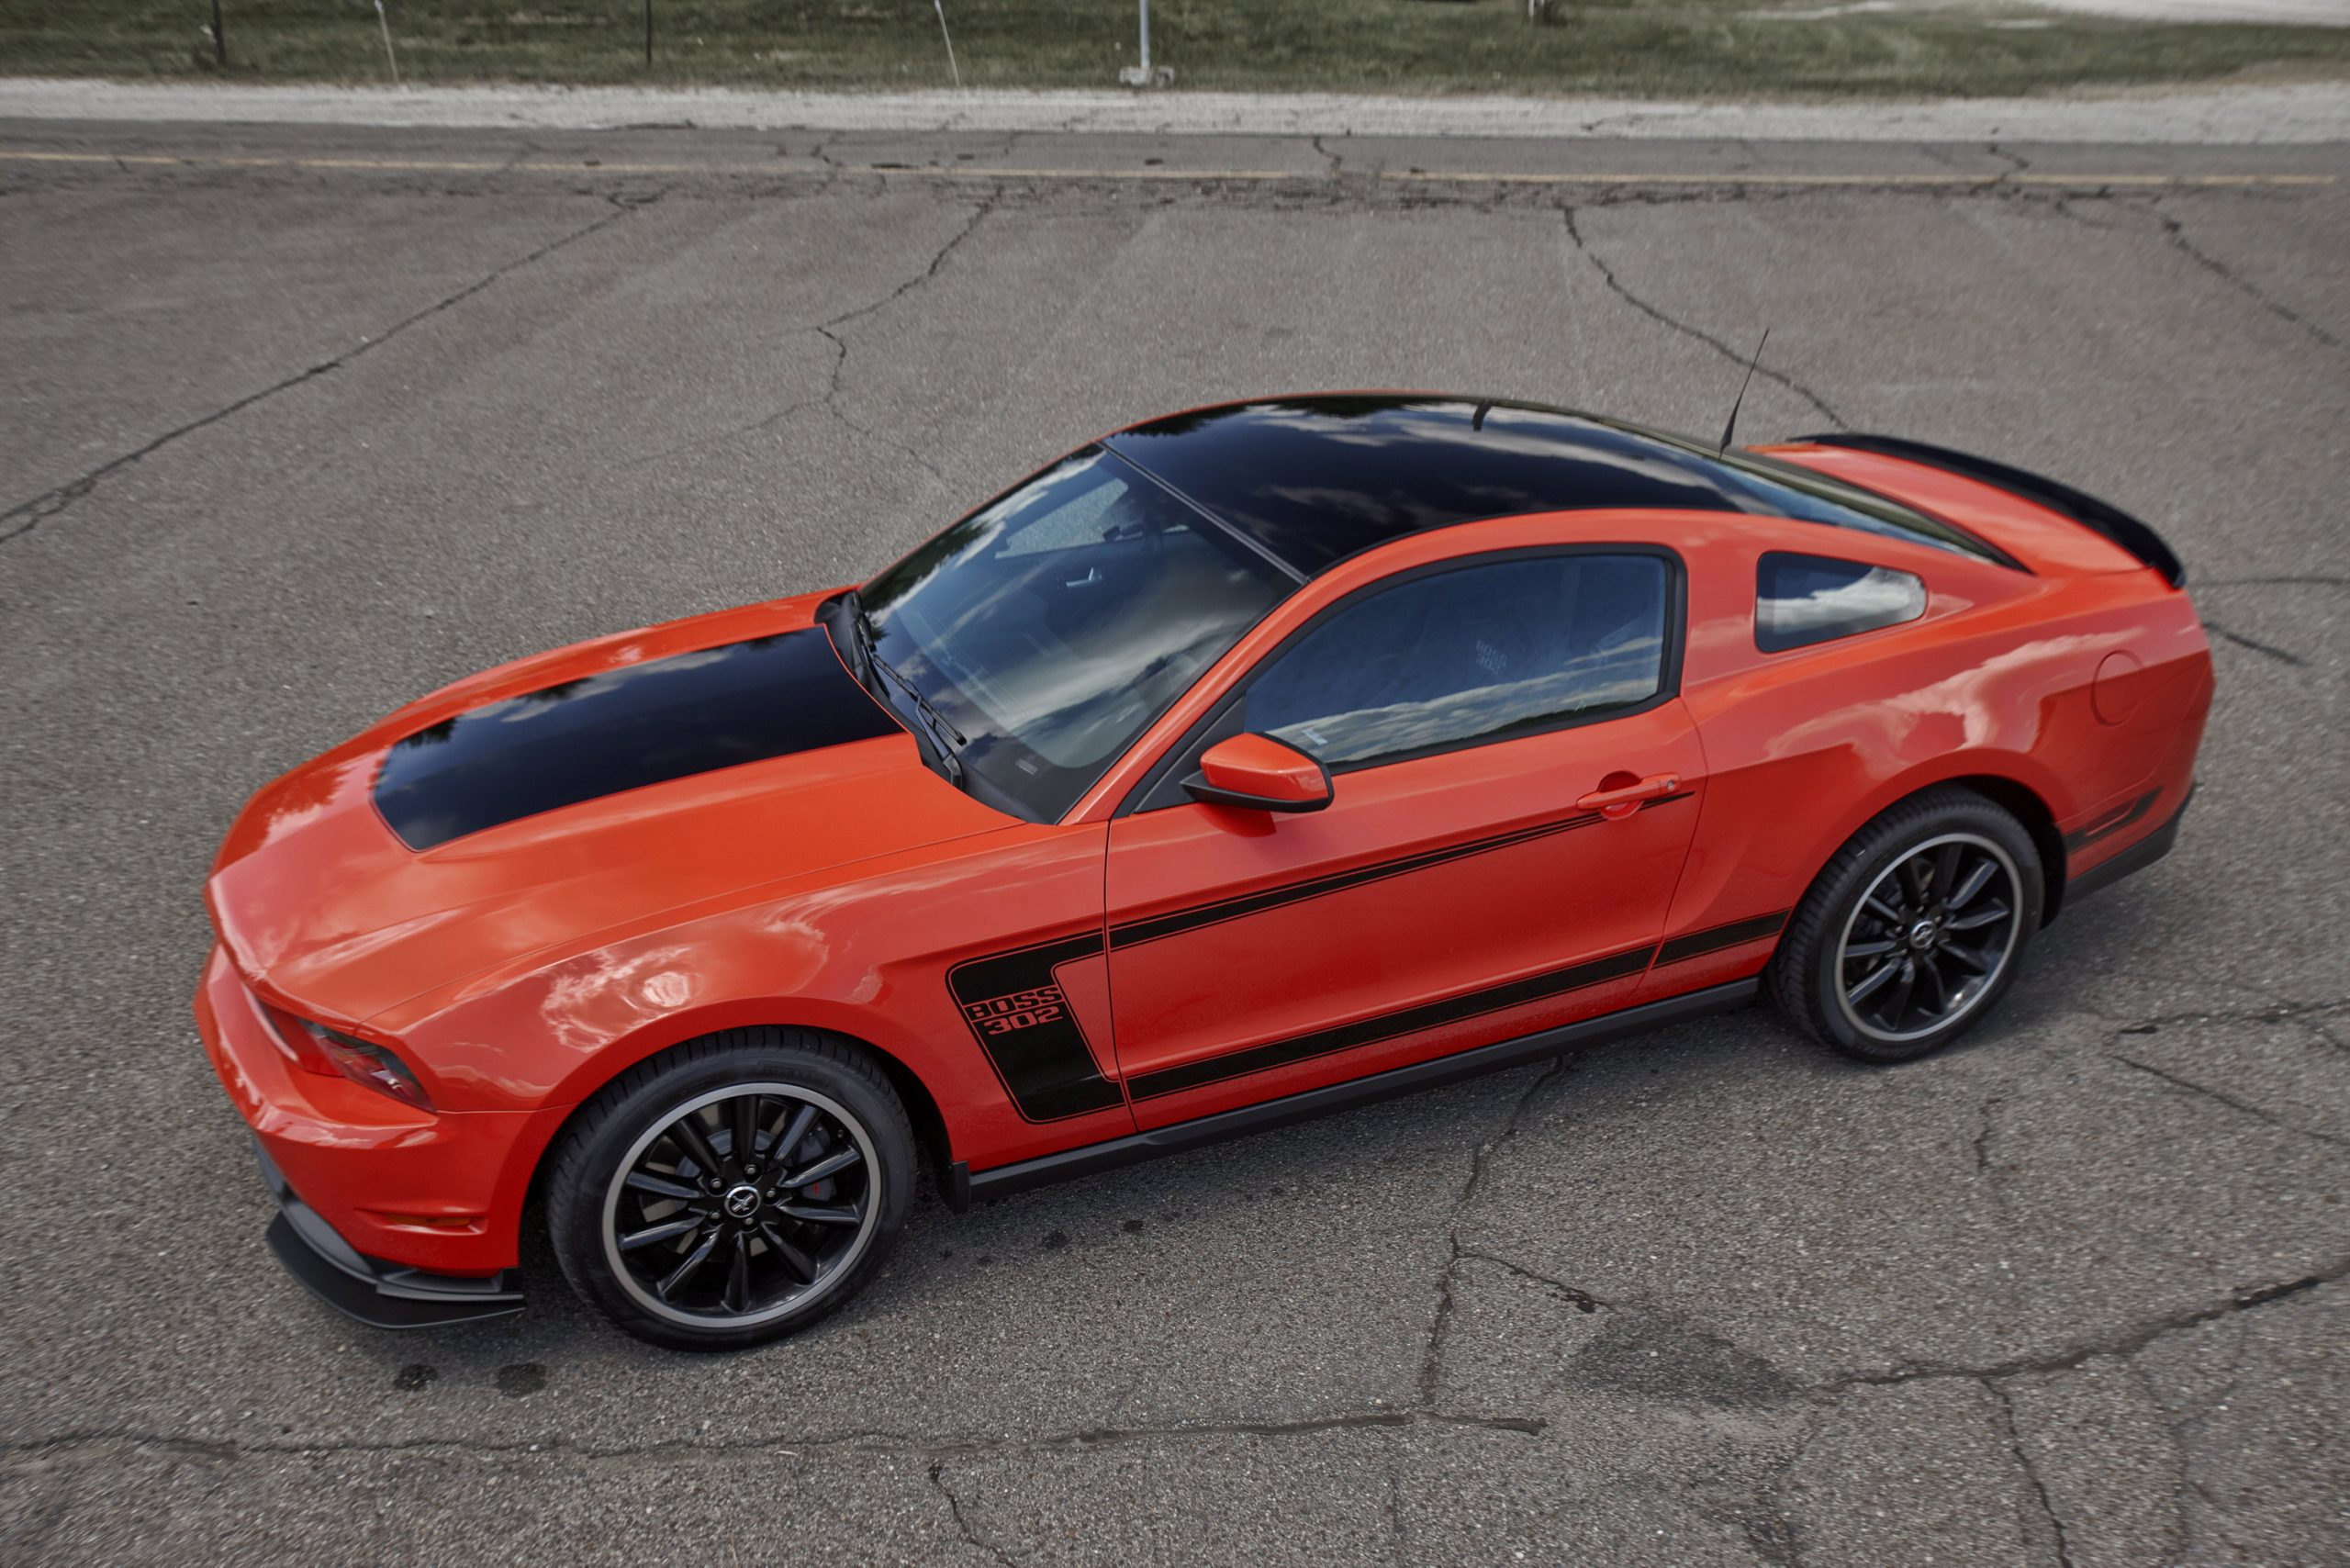 Mustang Boss 302 Buyers Get 'Attacked'